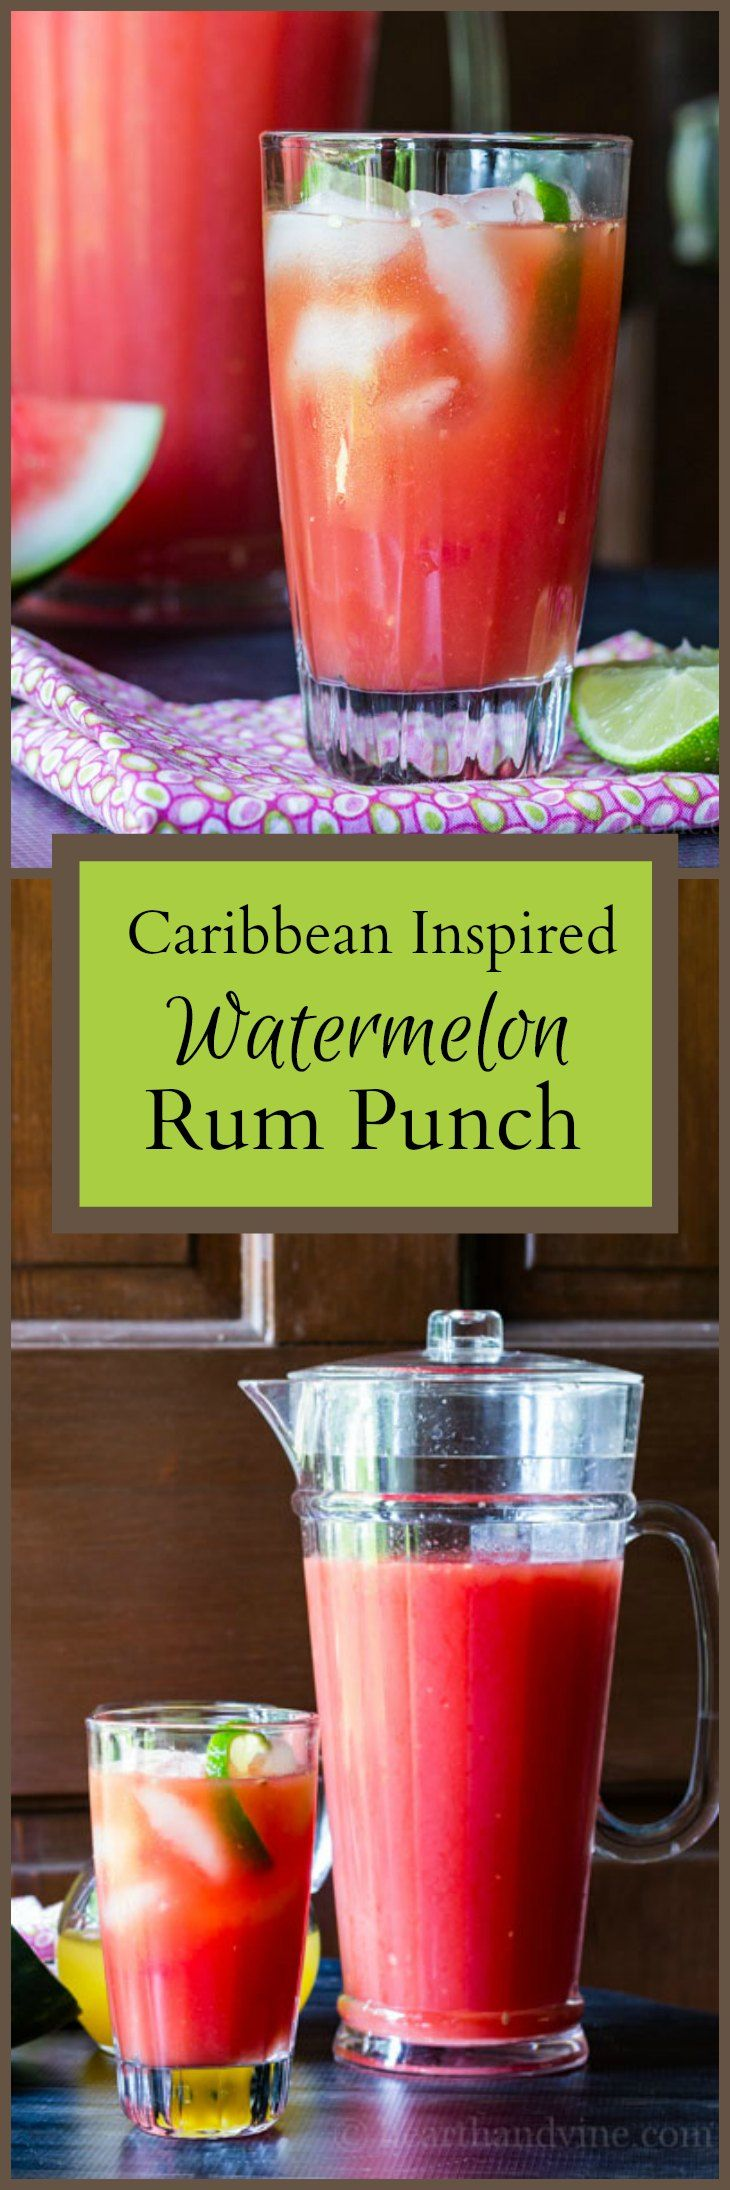 This recipe for watermelon rum punch was inspired by a trip to Santa Domingo in the Caribbean. Light, refreshing and perfect for a summer party.